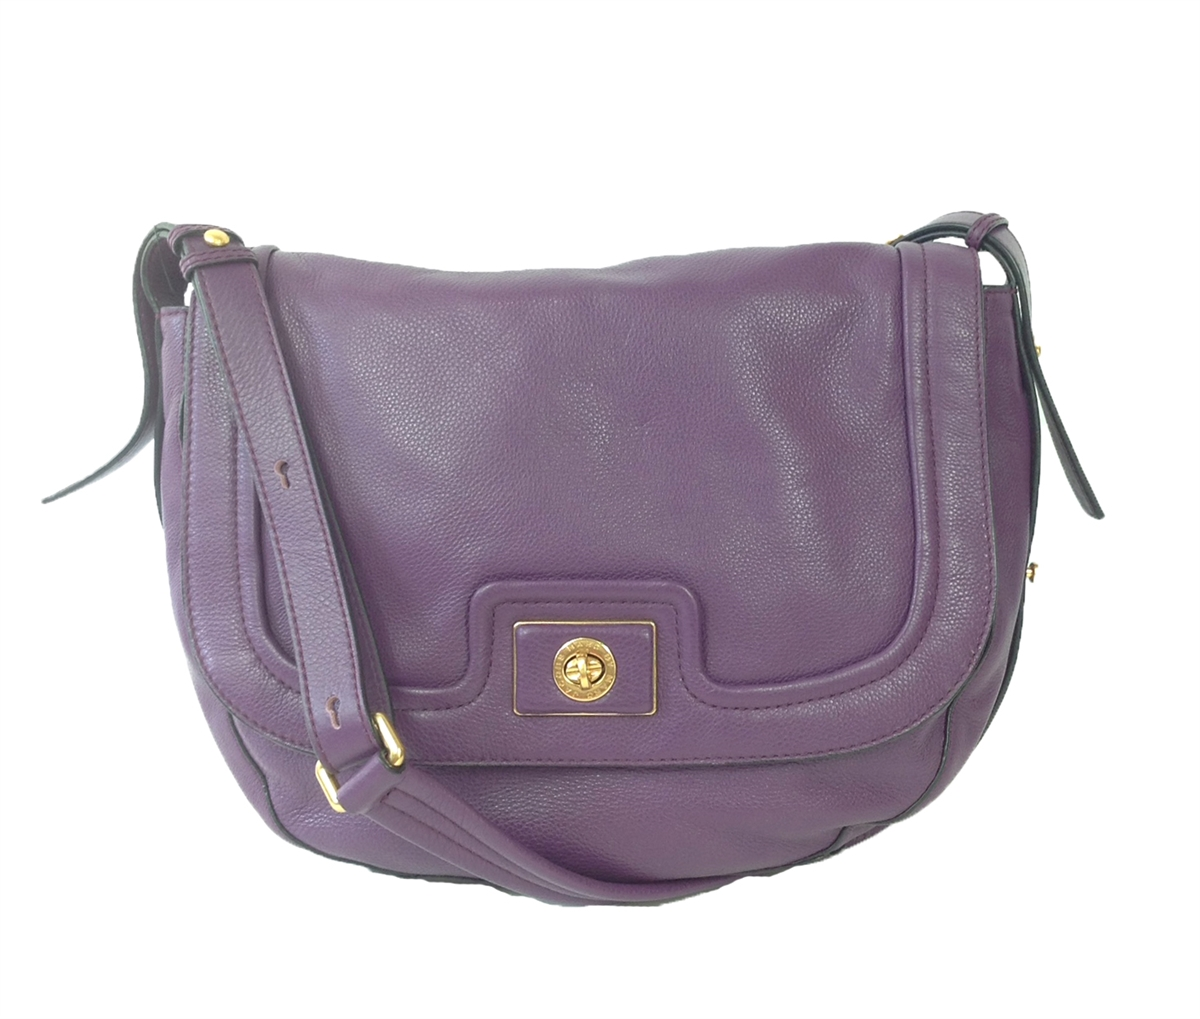 Marc Jacobs Purple Leather Shoulder Bag C4xb3hb9